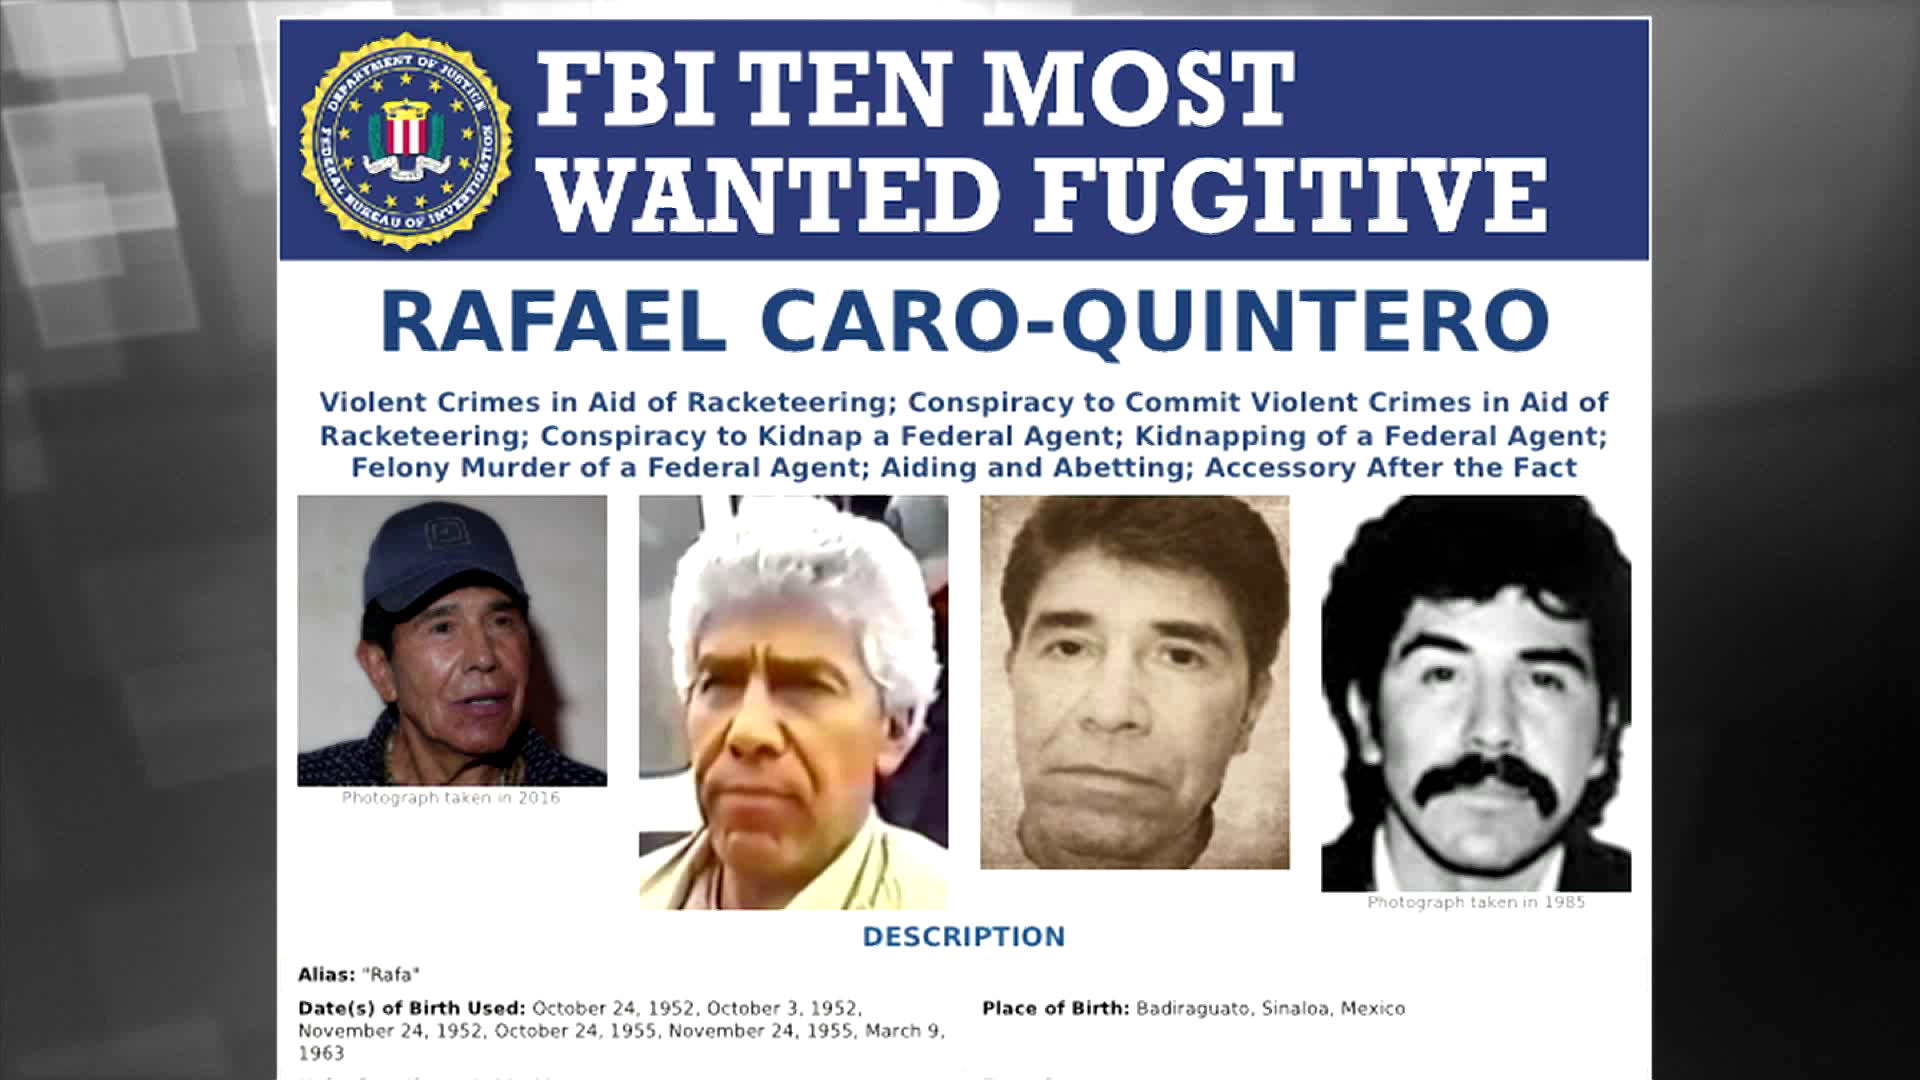 Wanted by the FBI: Rafael Caro-Quintero Added to Ten Most